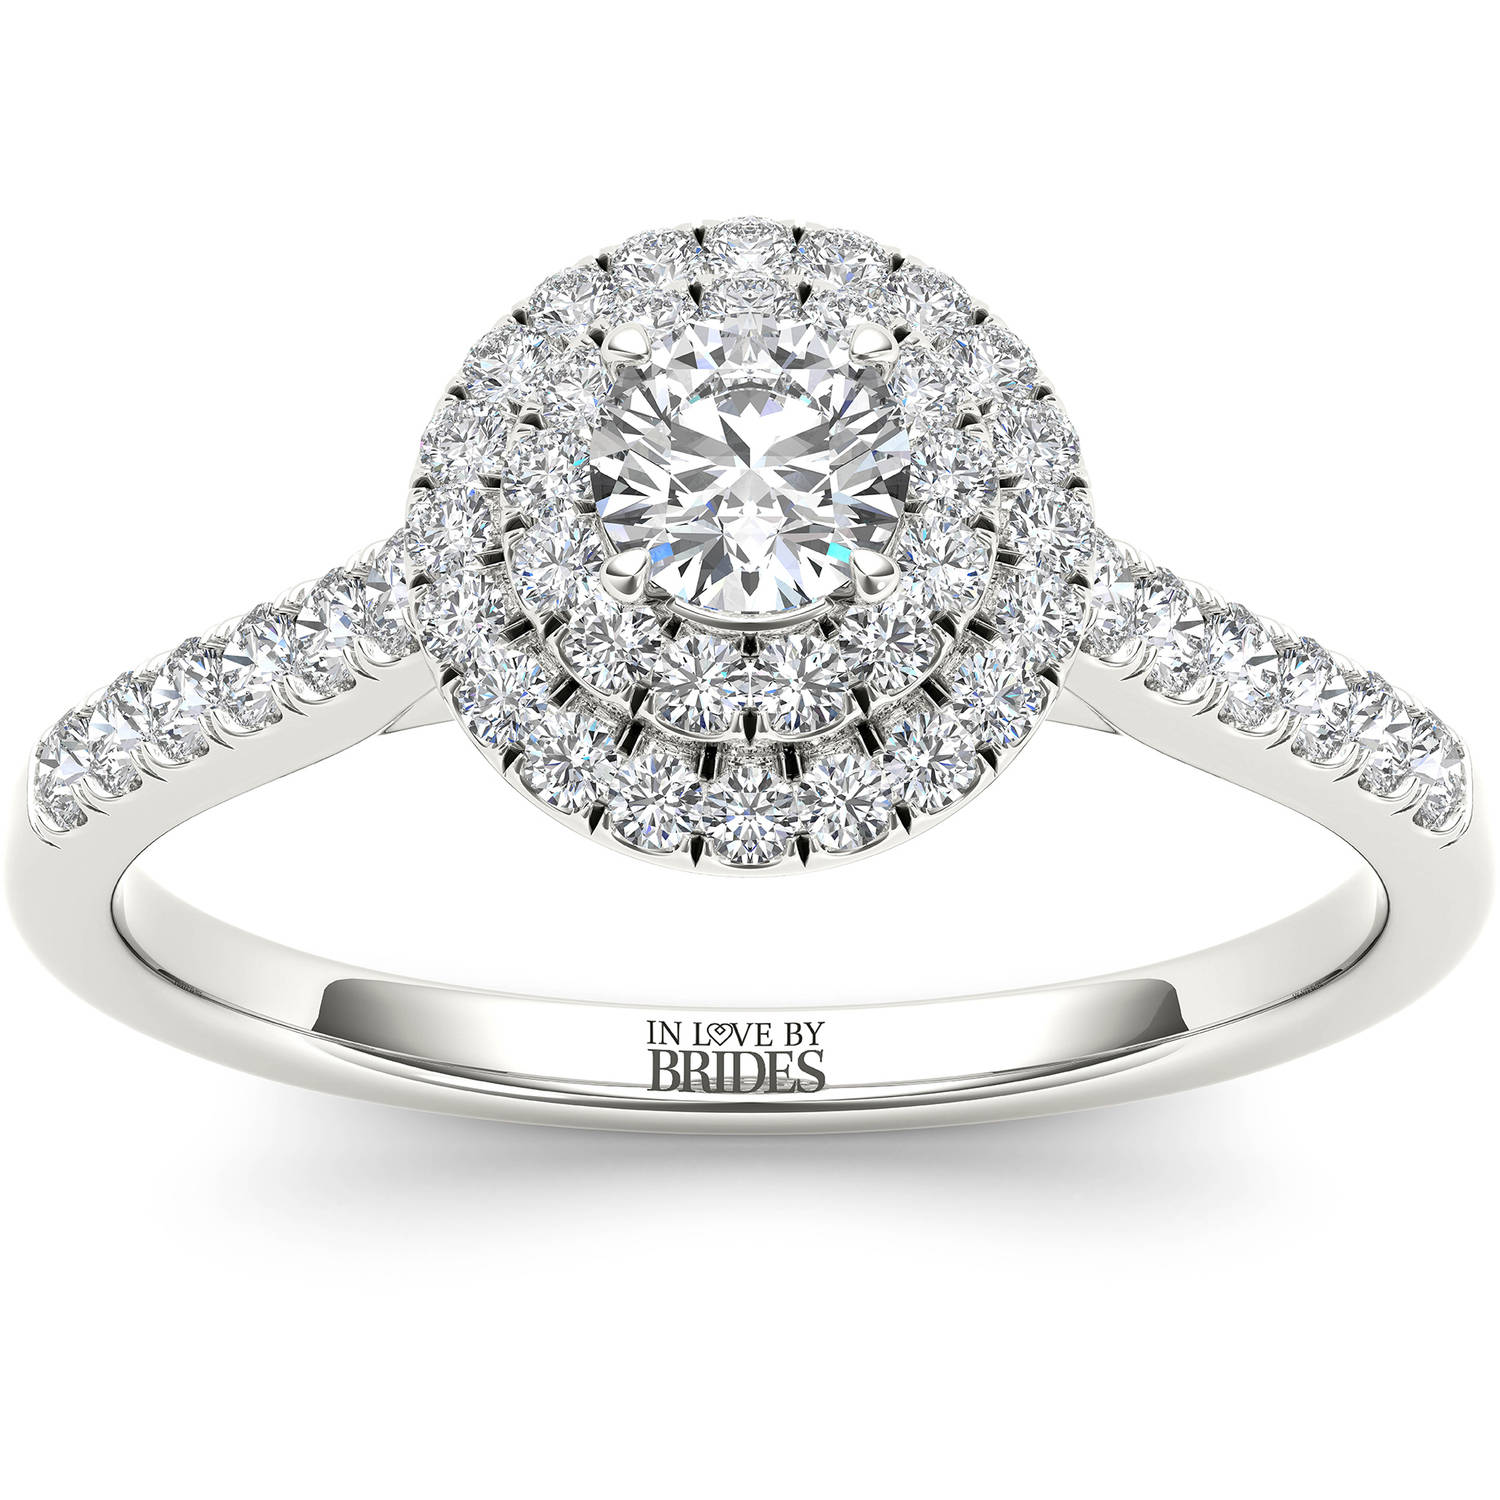 IN LOVE BY BRIDES 1/2 Carat T.W. Certified Diamond Classic Halo 14kt White Gold Engagement Ring